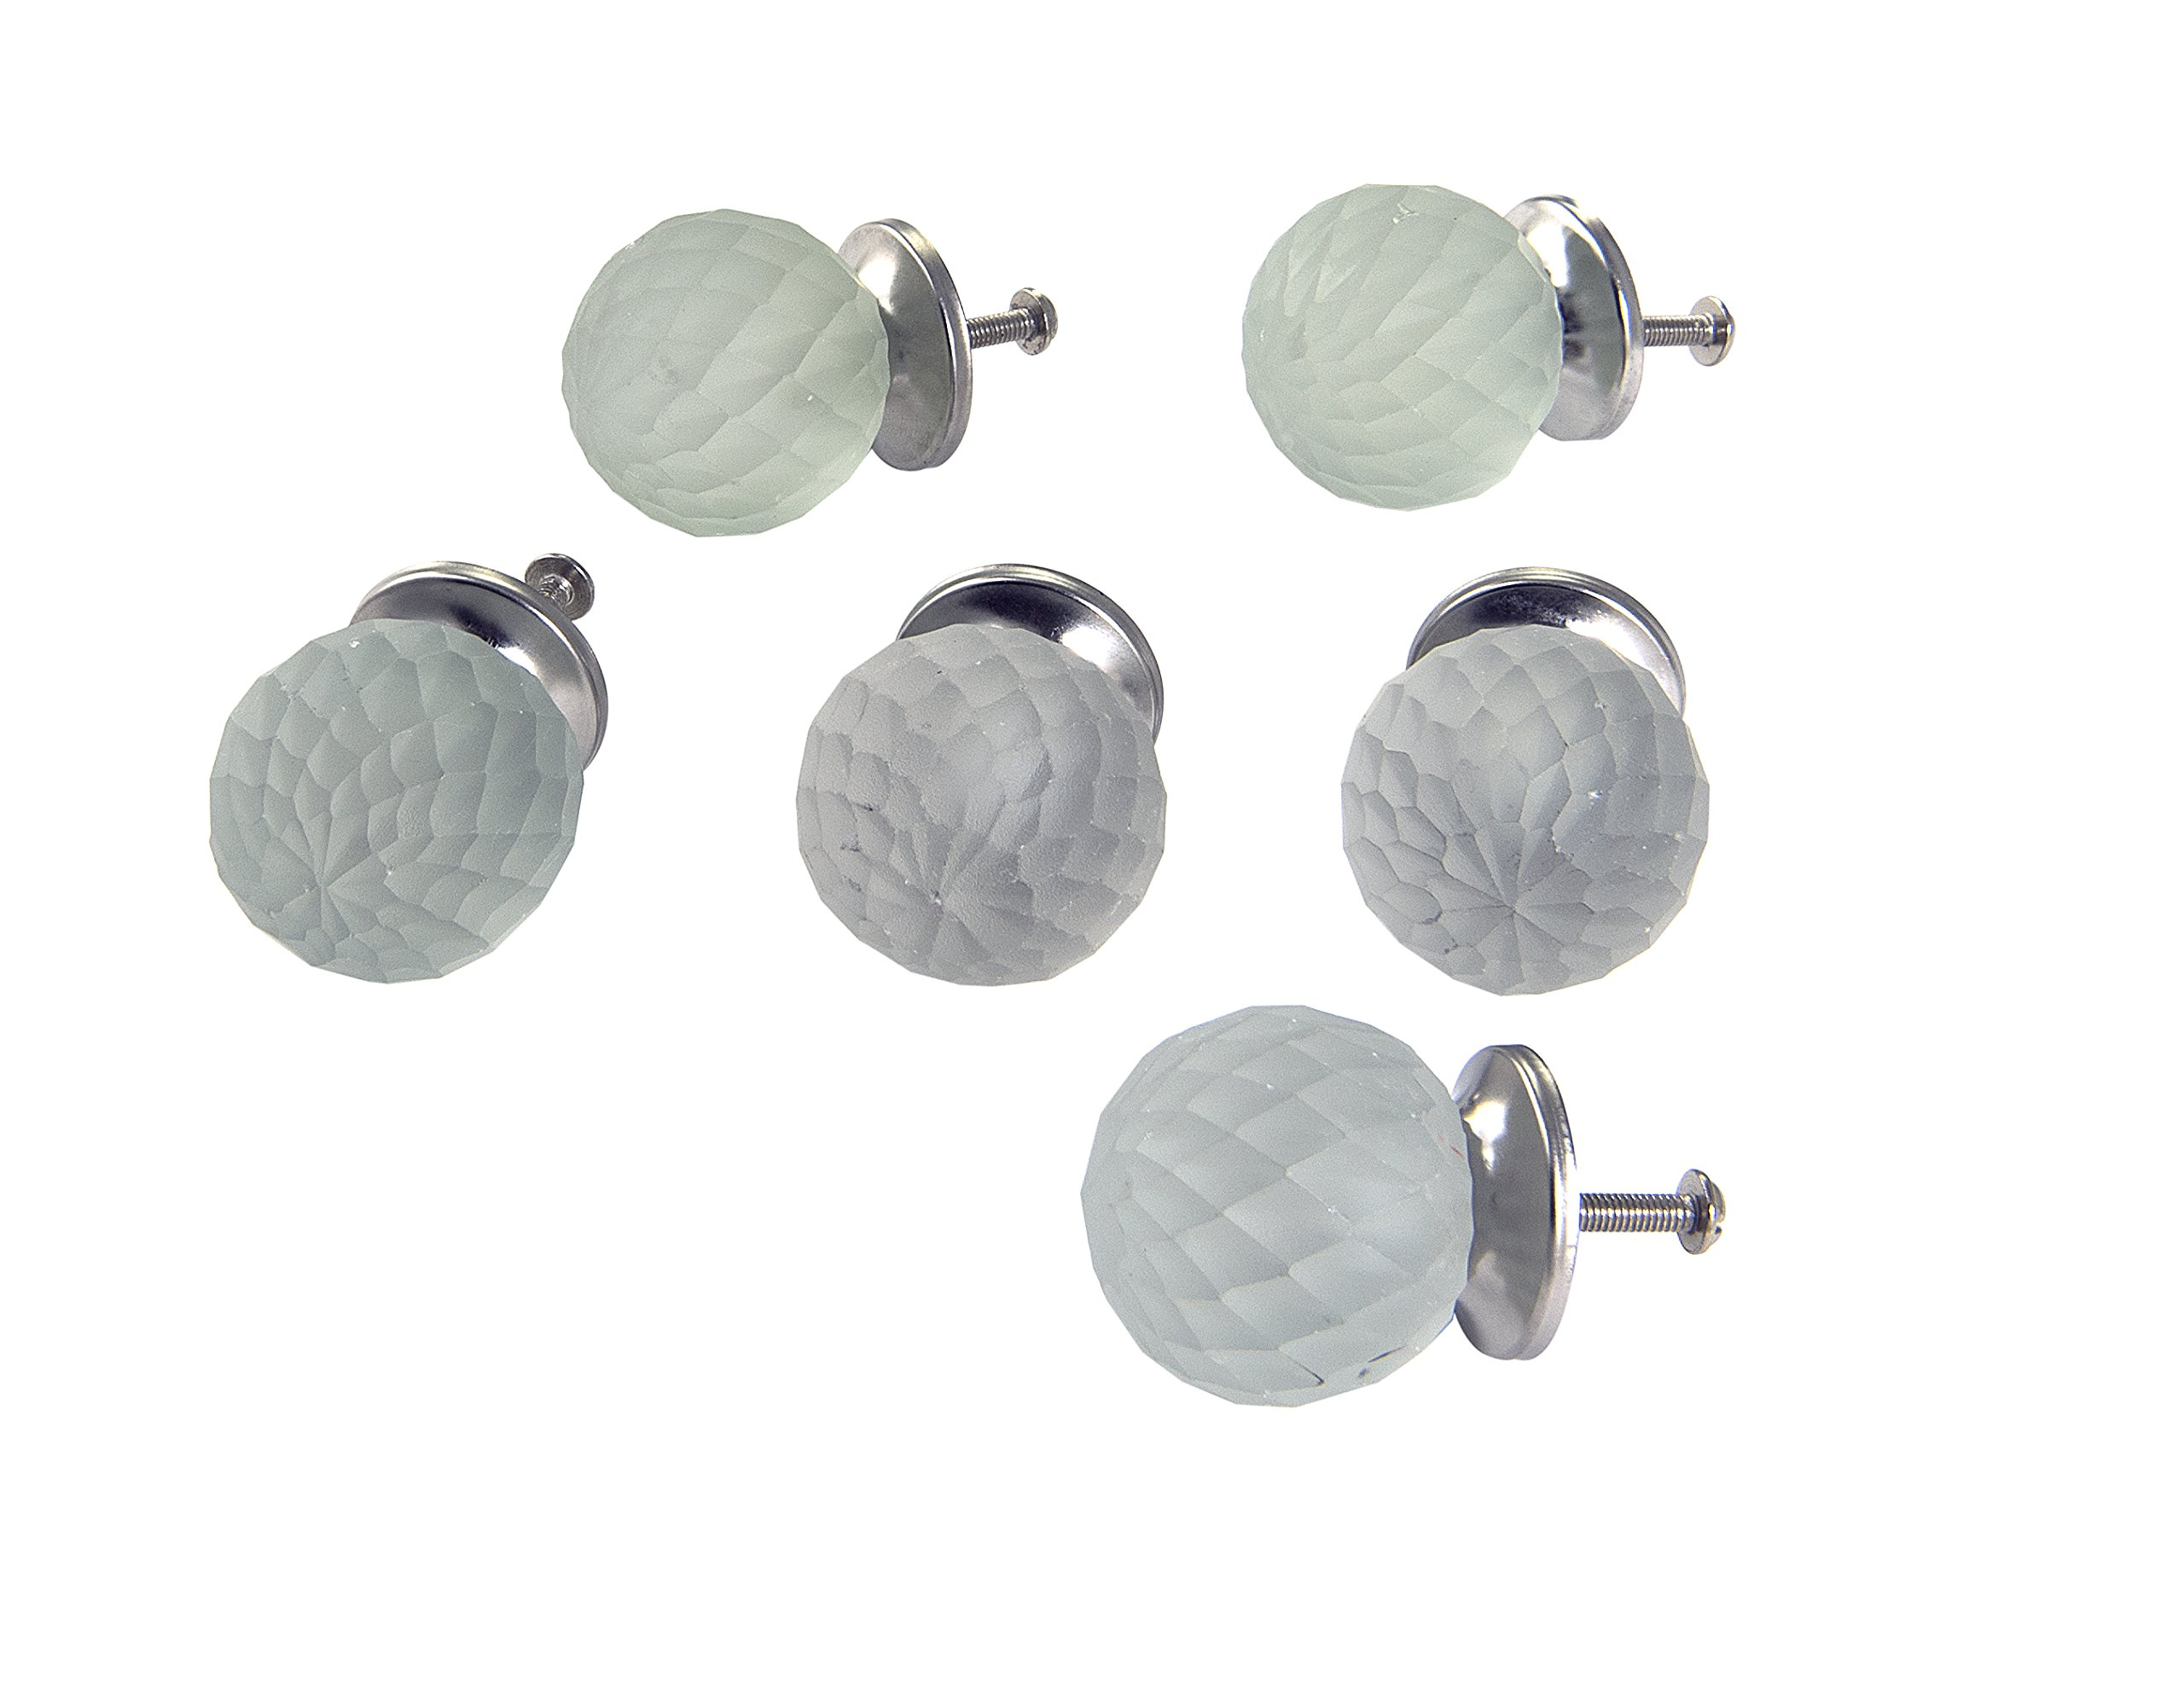 Dritz Home 47024A Frosted Glass Faceted Ball Knob Handcrafted Knobs for Cabinets & Drawers